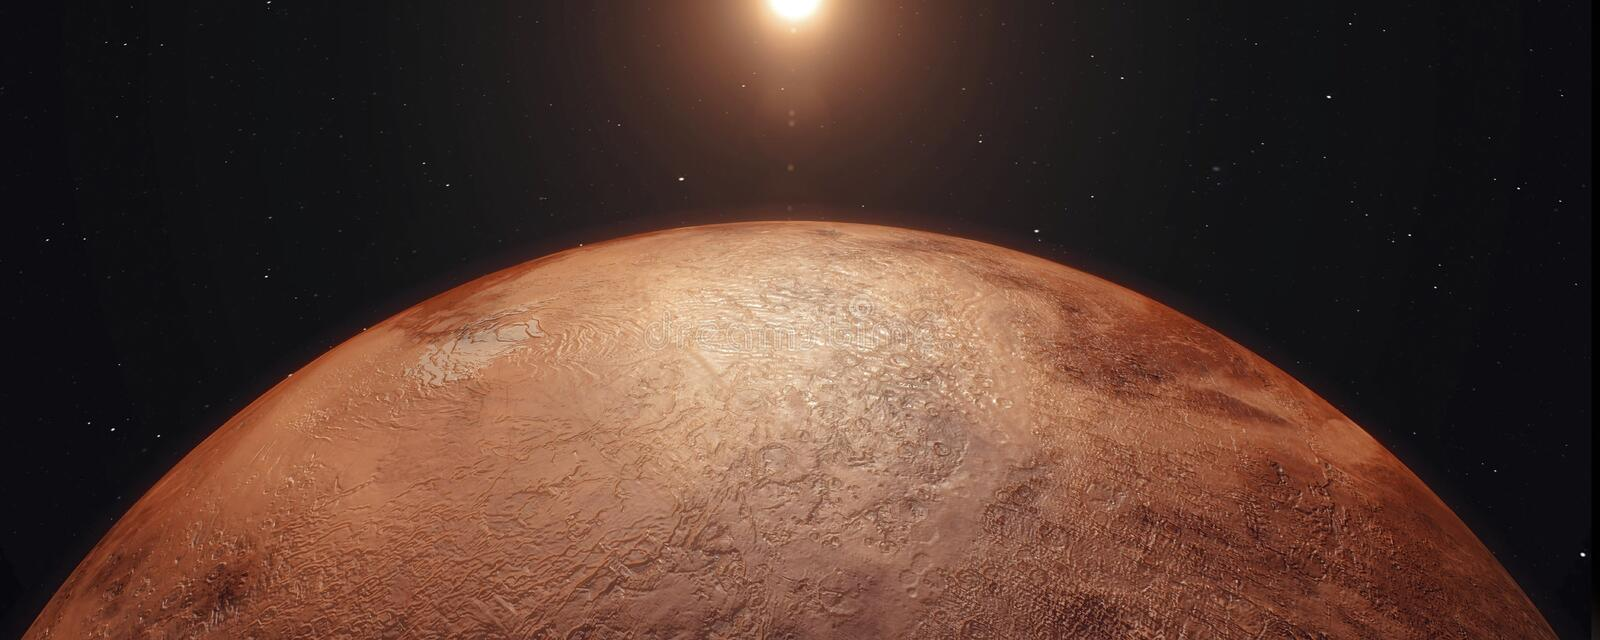 Mars, Sunrise over Planet Mars, Dark side of the red planet with shading 3d rendering. royalty free illustration